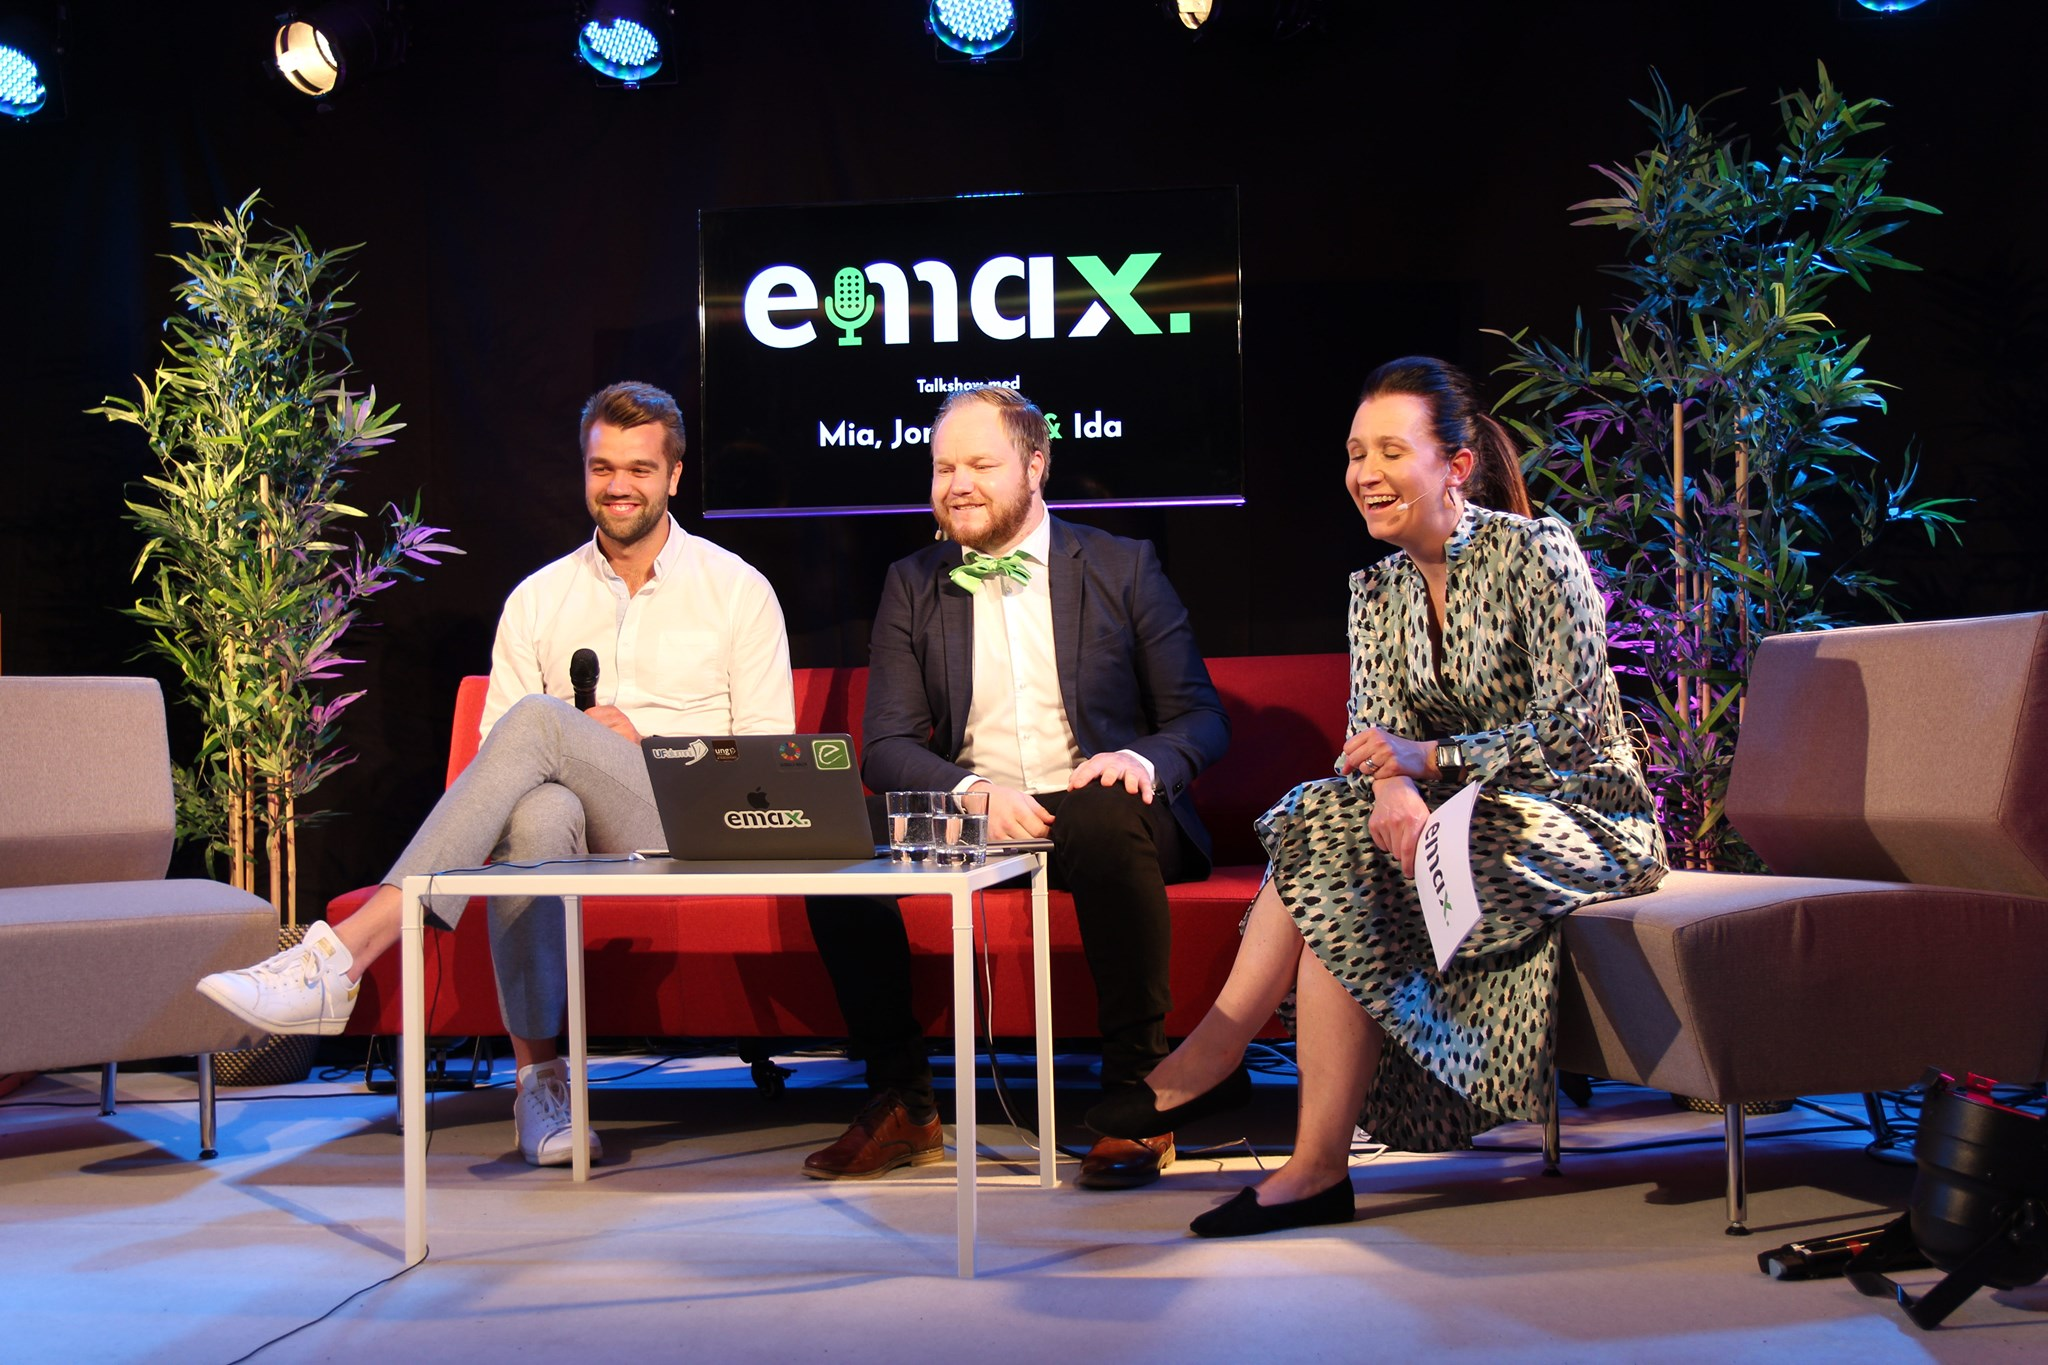 Emax uses Brella to power their two virtual events and connect young, hungry entrepreneurs.